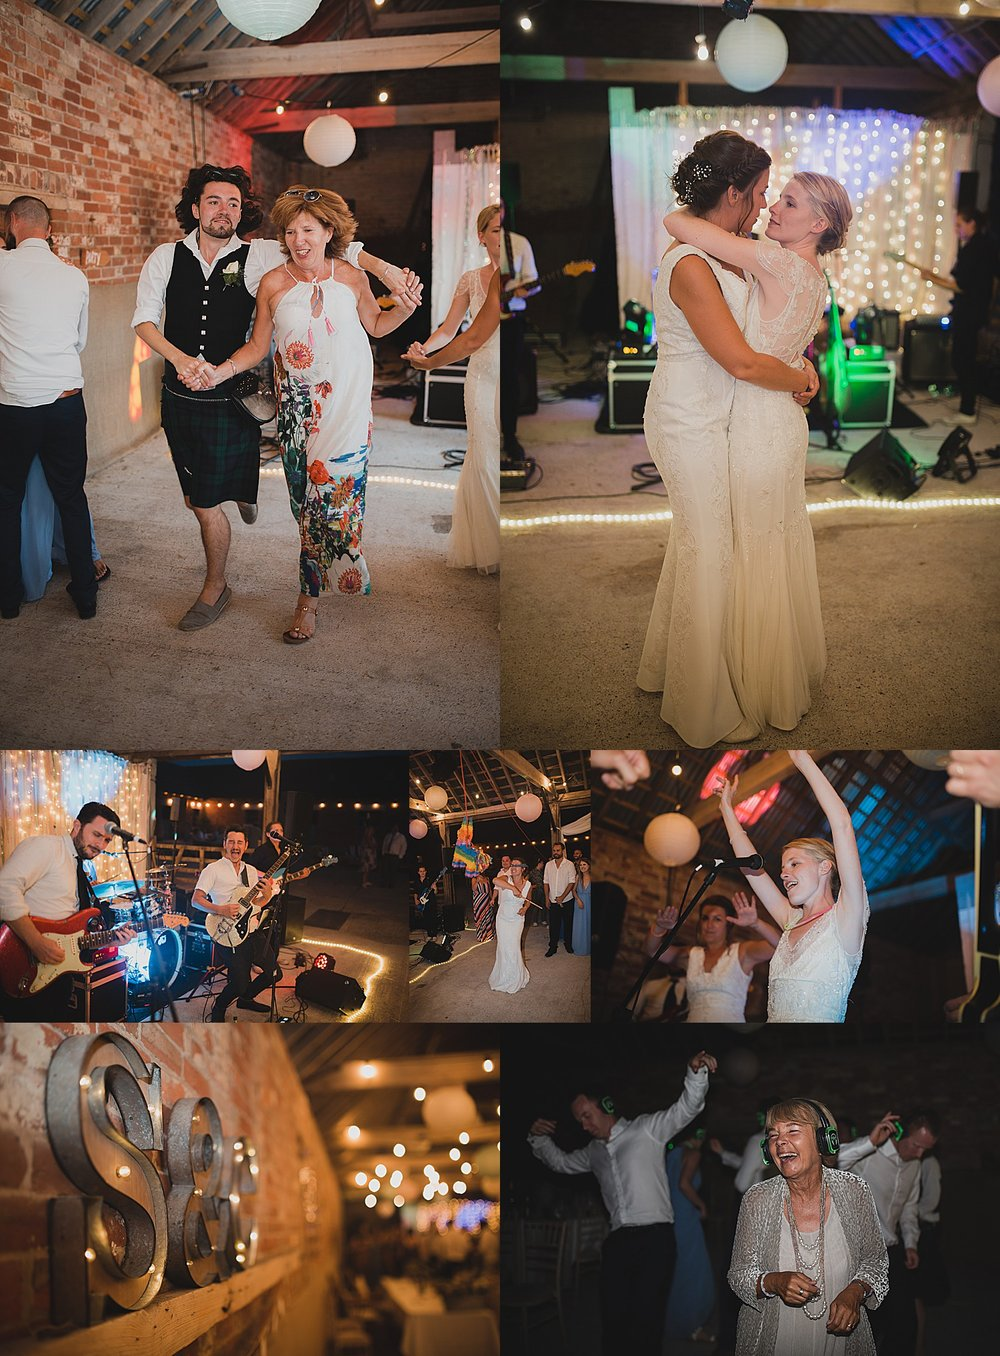 Warborne Farm wedding photographer